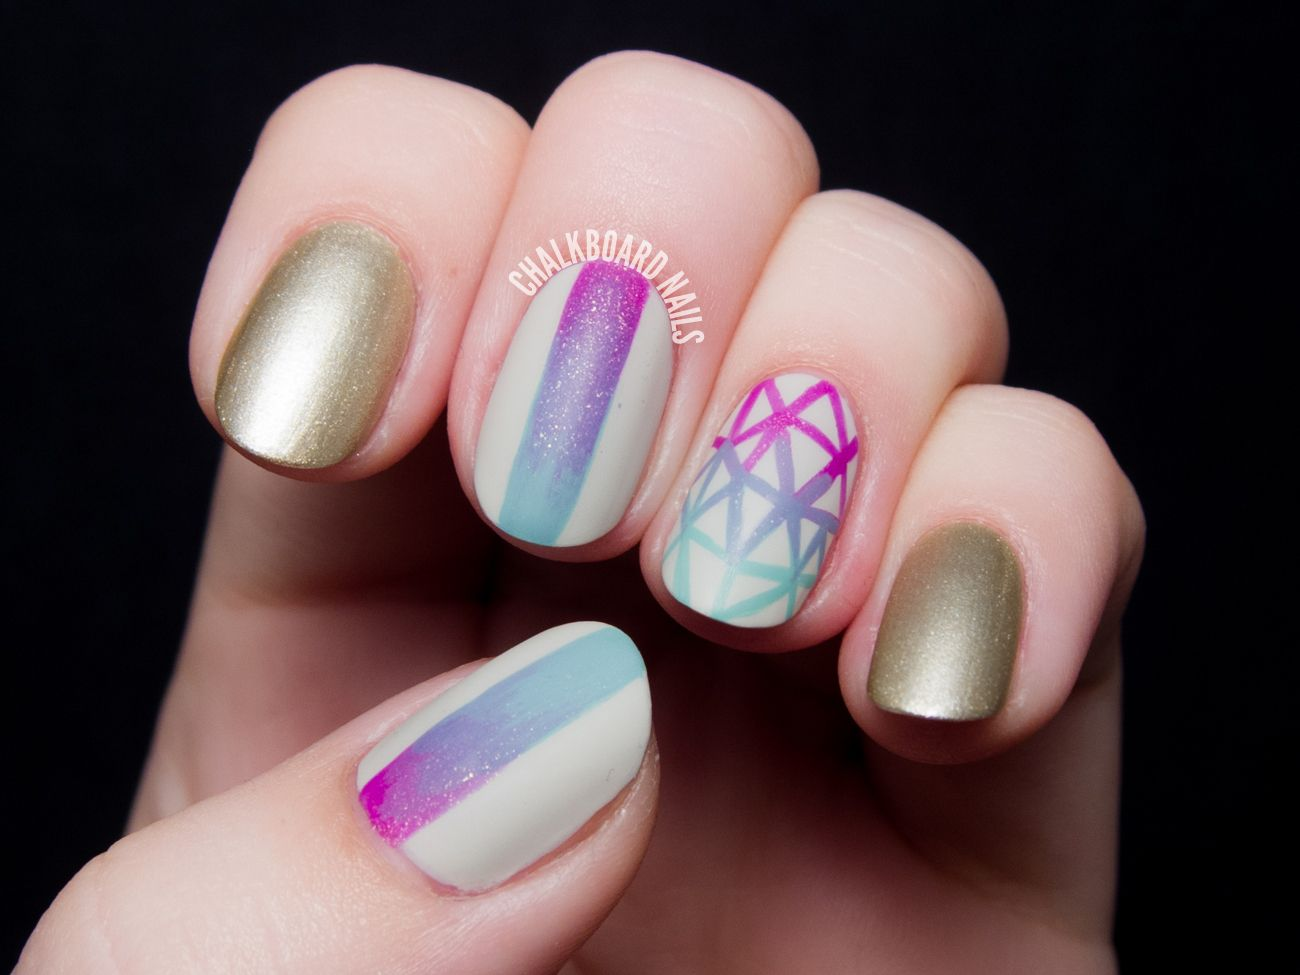 Excellent 3d Gel Nail Art Designs Big Red Nail Polish On Carpet Round The Best Treatment For Nail Fungus Inglot Nail Polish Singapore Youthful Nail Polish Supply BlackLight Nail Polish Colors 1000  Images About Nails On Pinterest